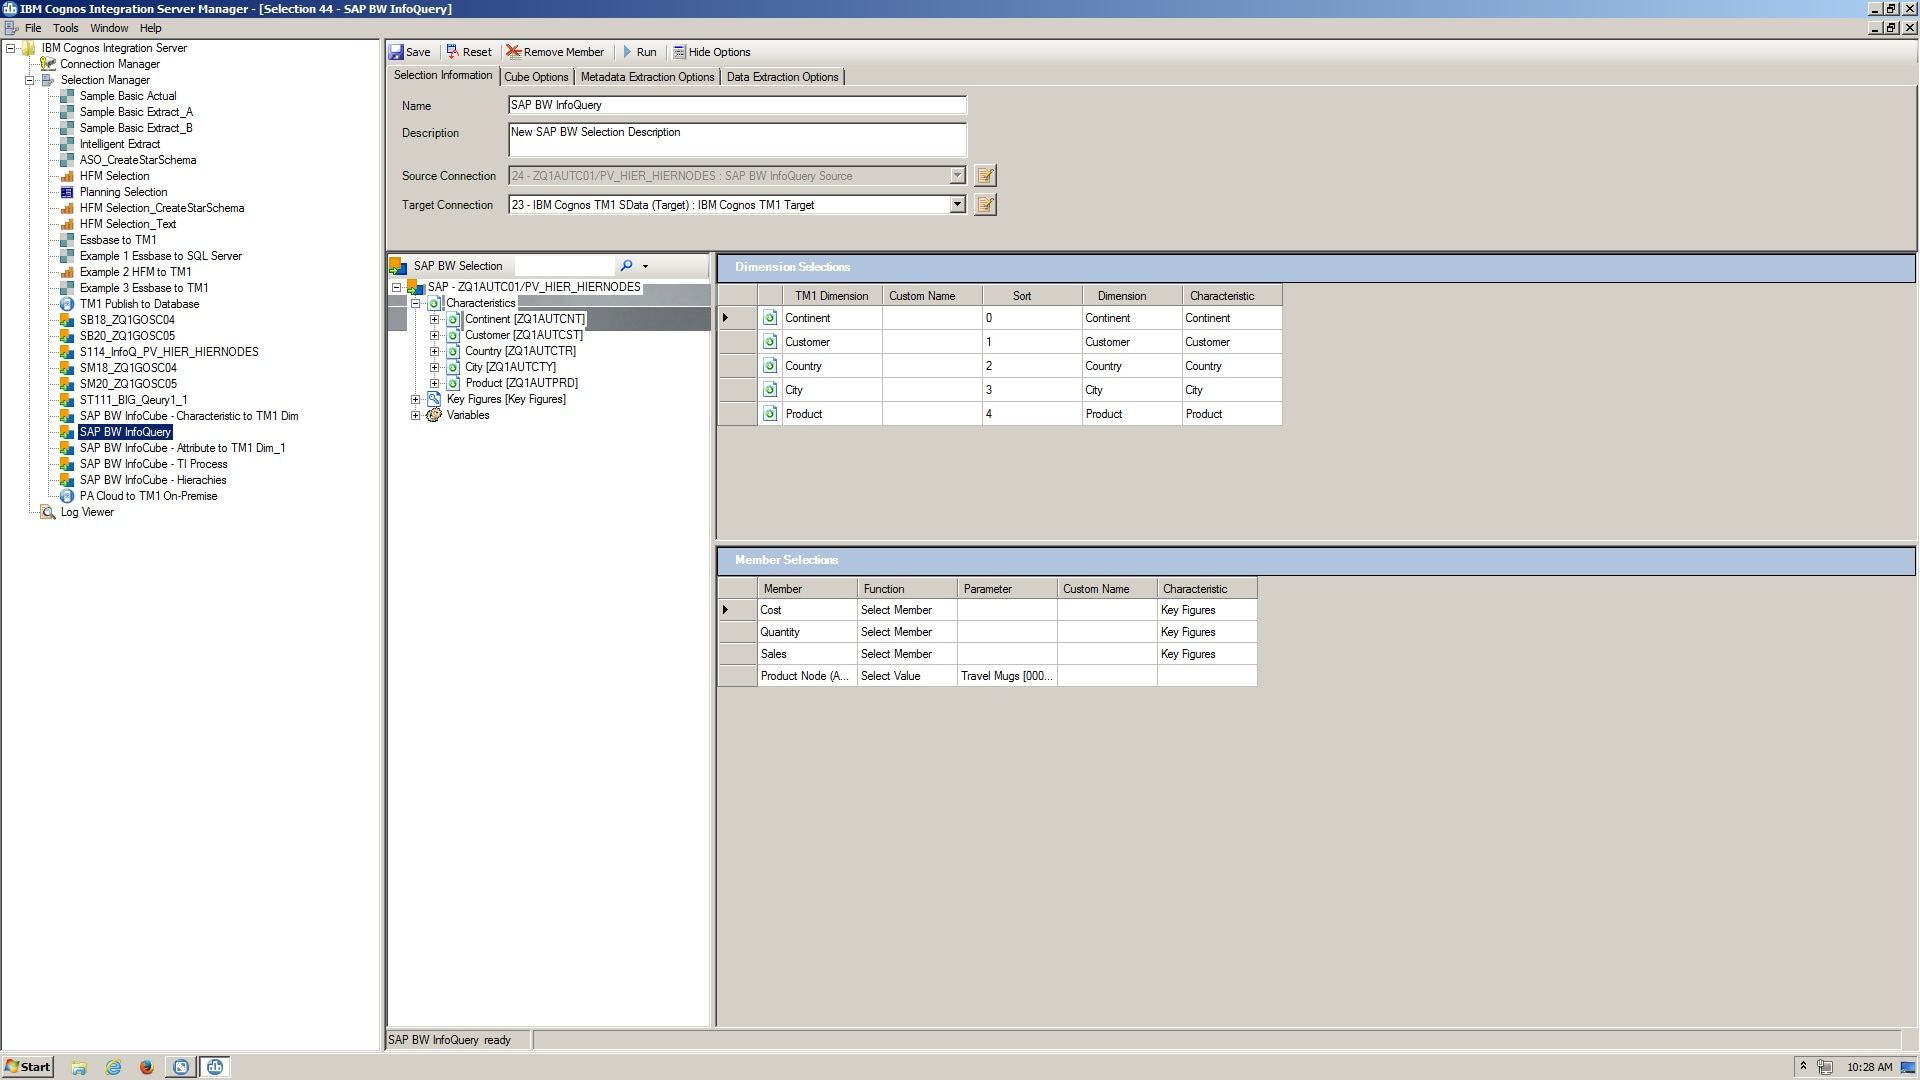 Screenshot showing data extraction in IBM Cognos Integration Server